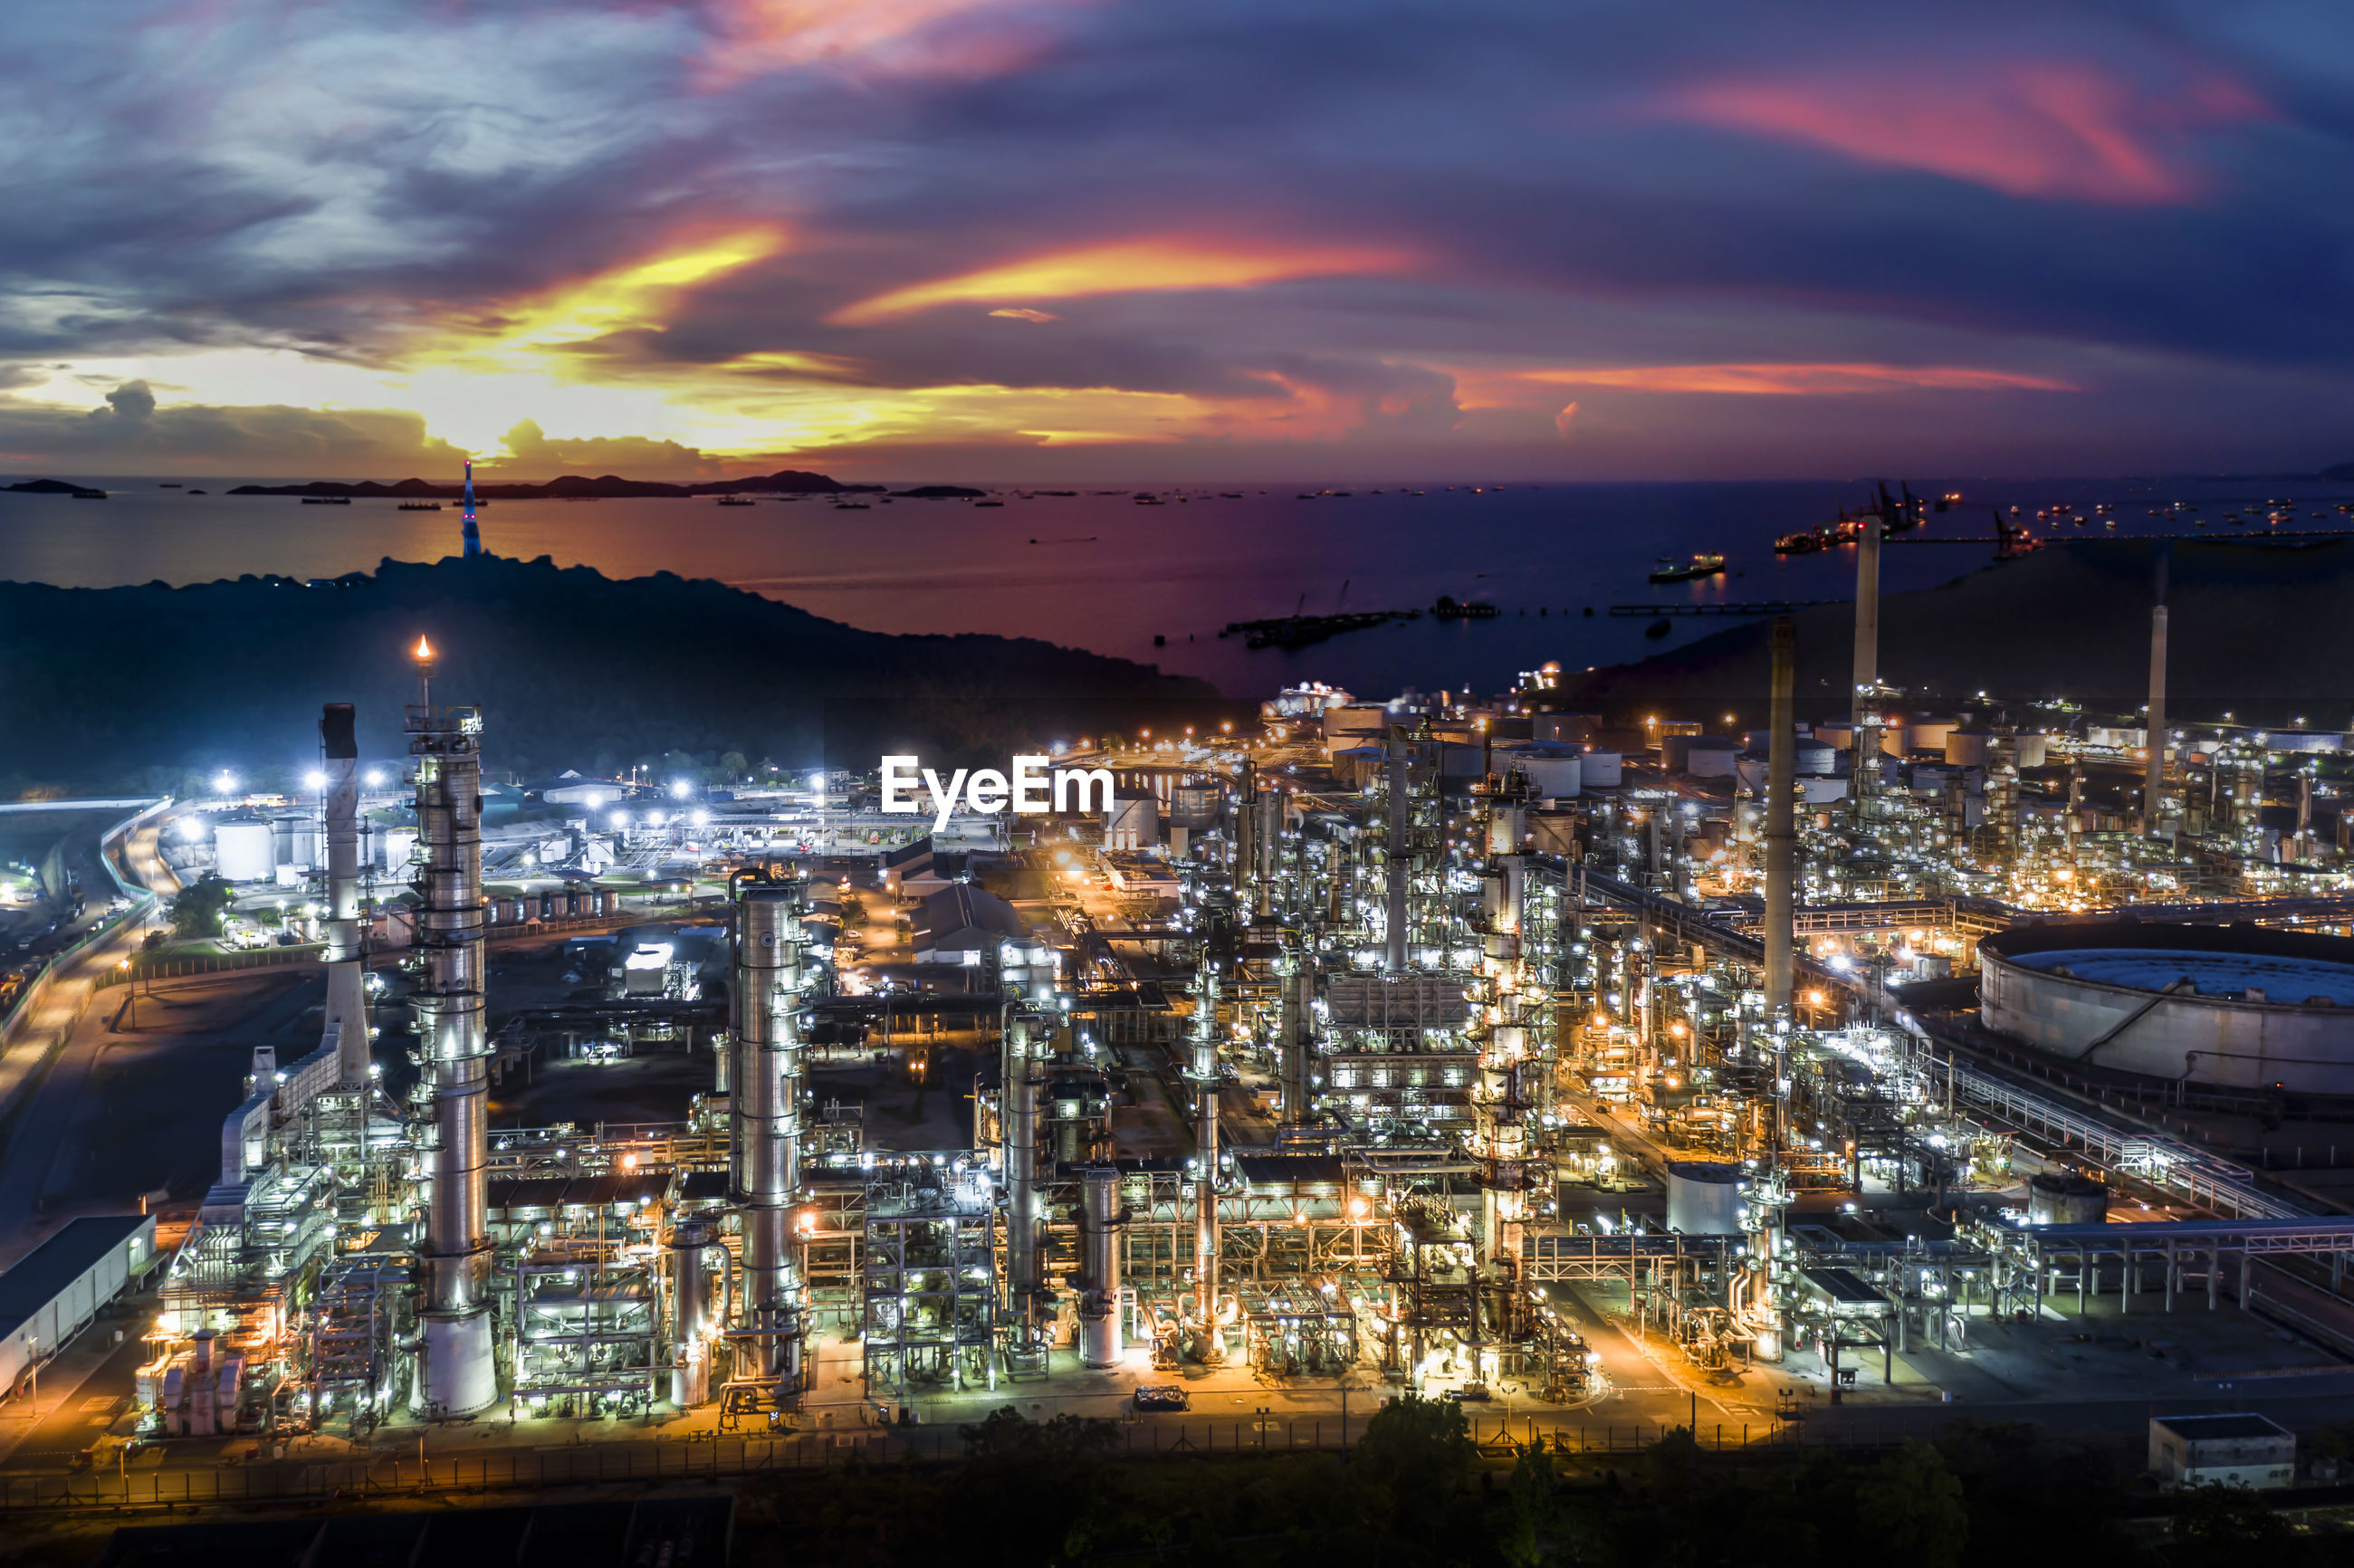 Oil refinery and petroleum industry factory zone at night over lighting with the sea